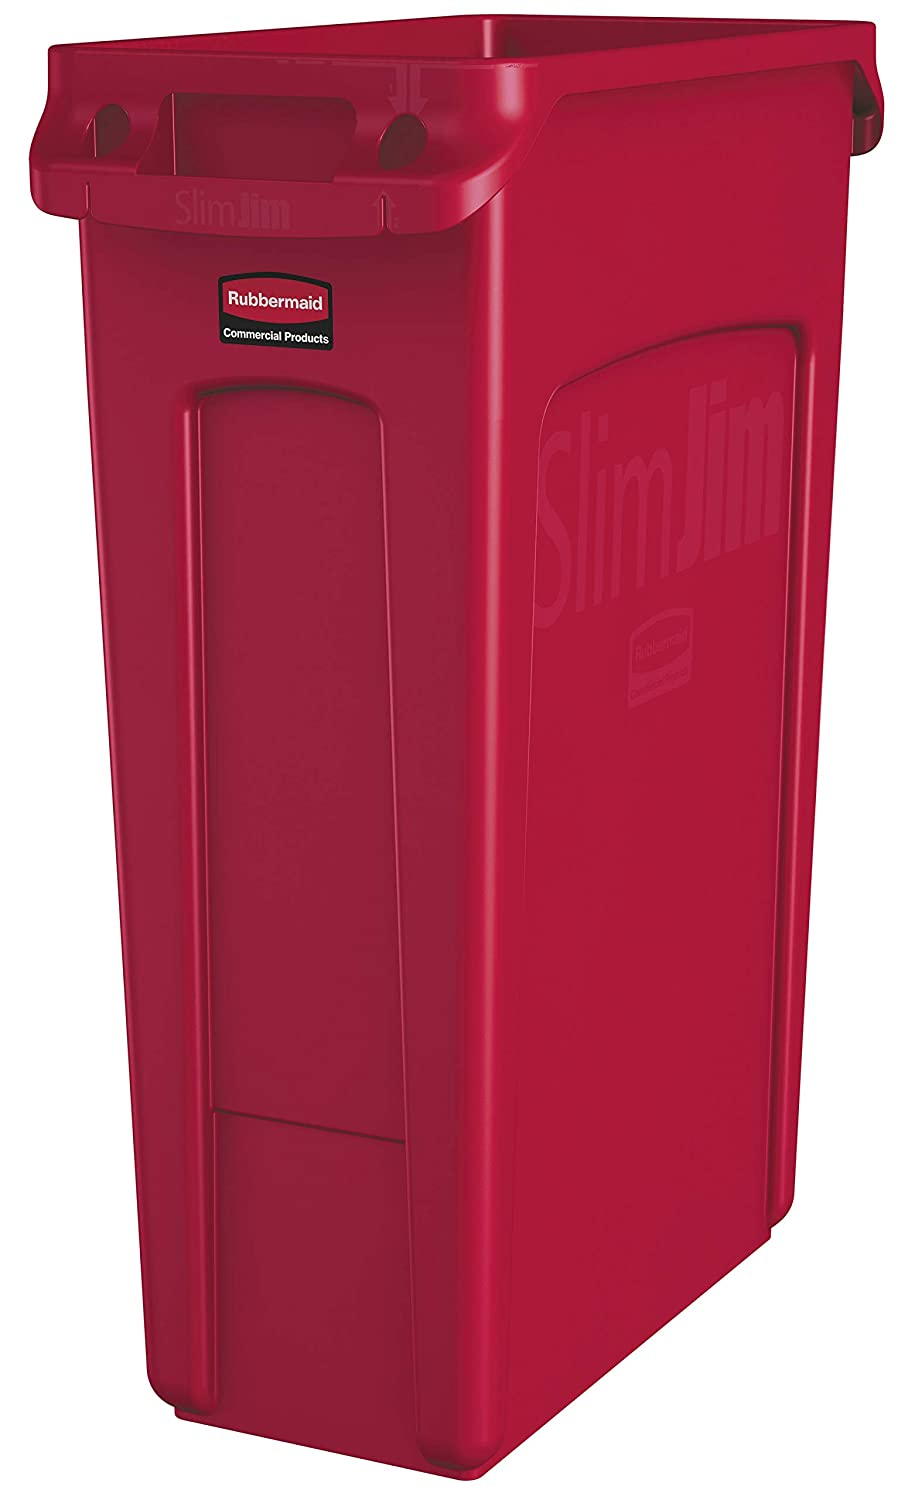 Rubbermaid Commercial Products Slim Jim Plastic Rectangular Trash/Garbage Can with Venting Channels, 23 Gallon, Red (1956189)